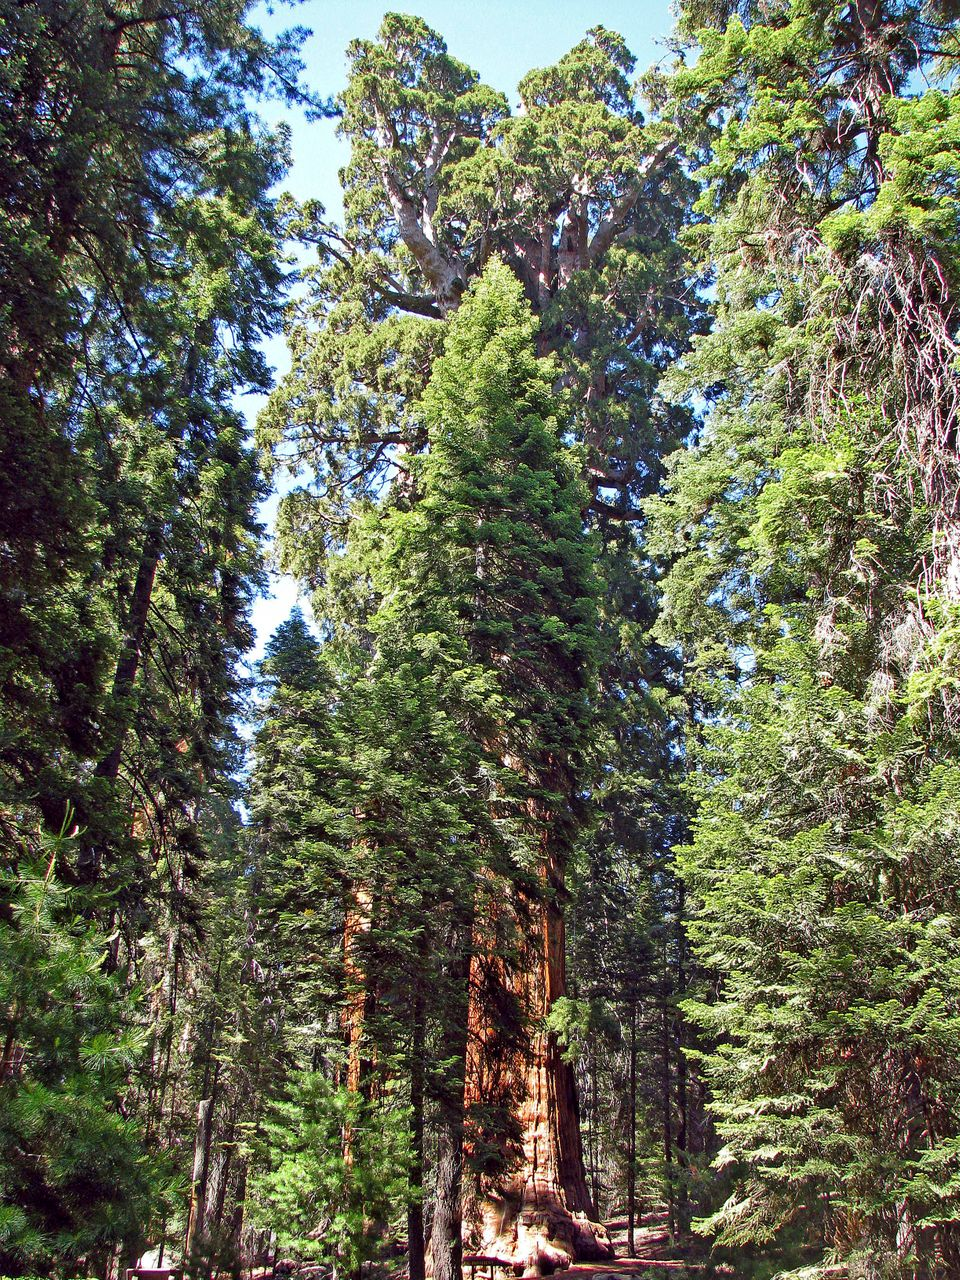 In this 2009 photo released by Steve Sillett, The President, a Giant Sequoia Tree, is shown in Sequoia National Park, Calif.